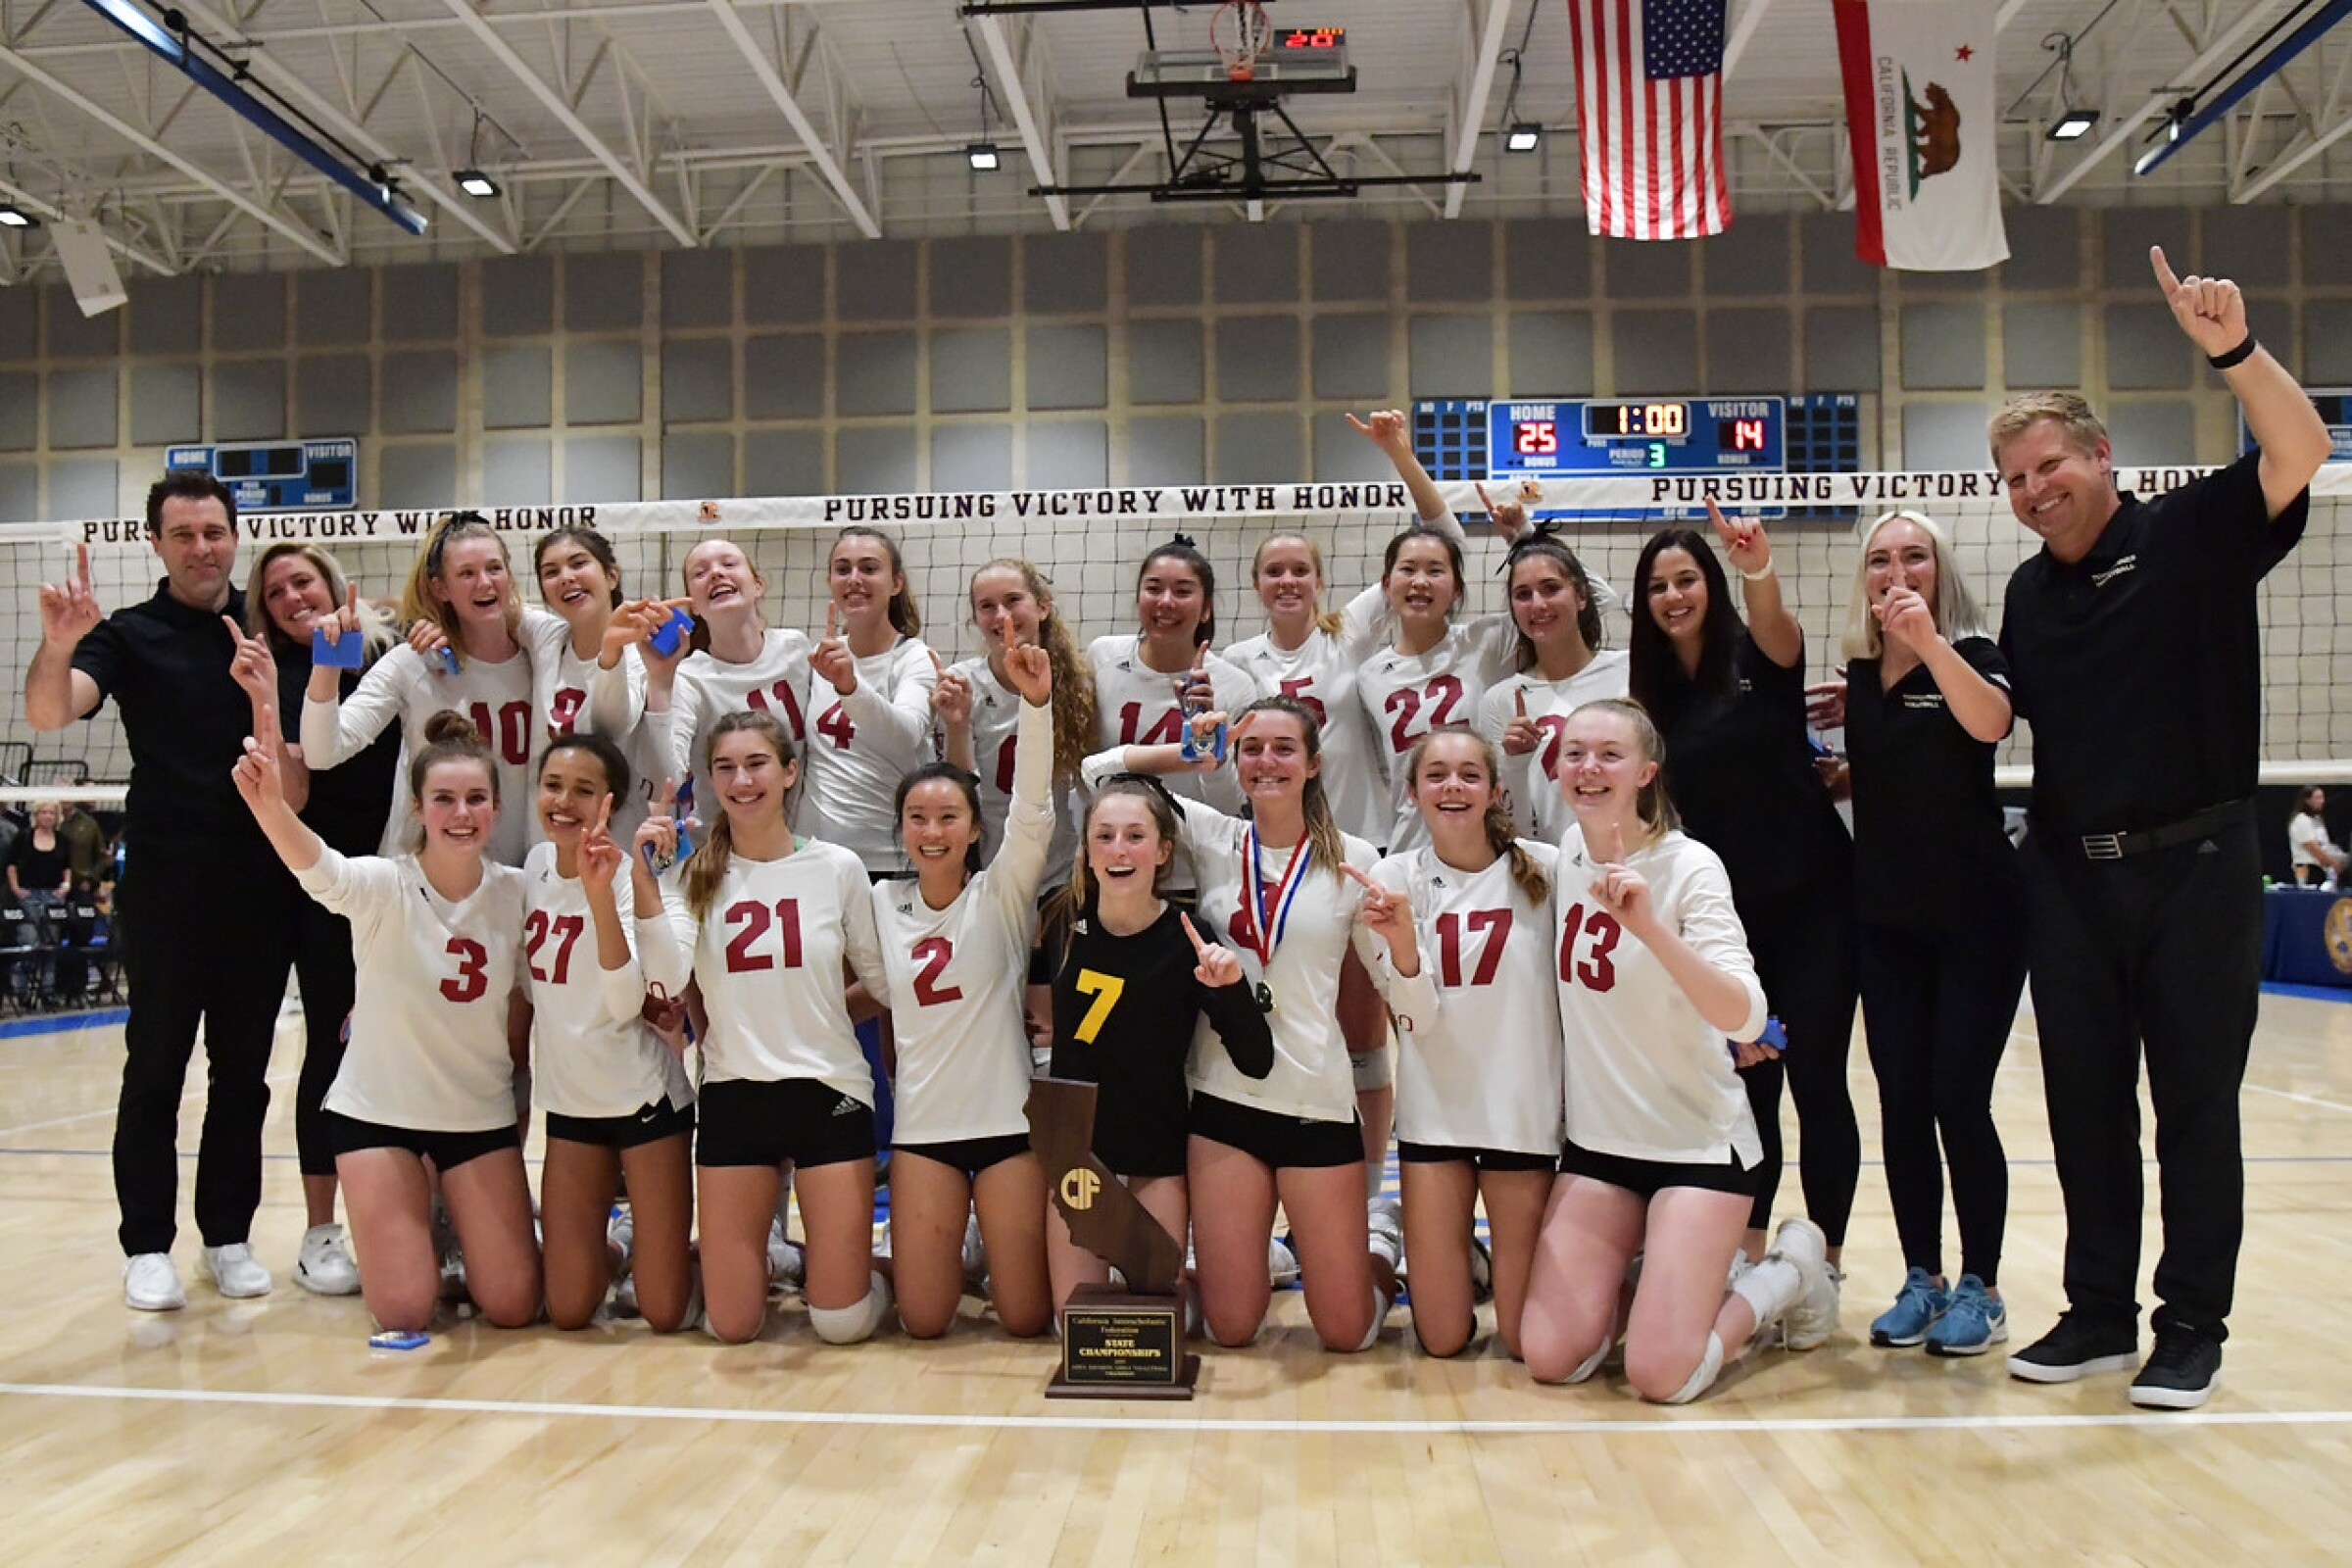 The MaxPreps website declared the Torrey Pines volleyball team its national champion on Tuesday, Nov. 26.